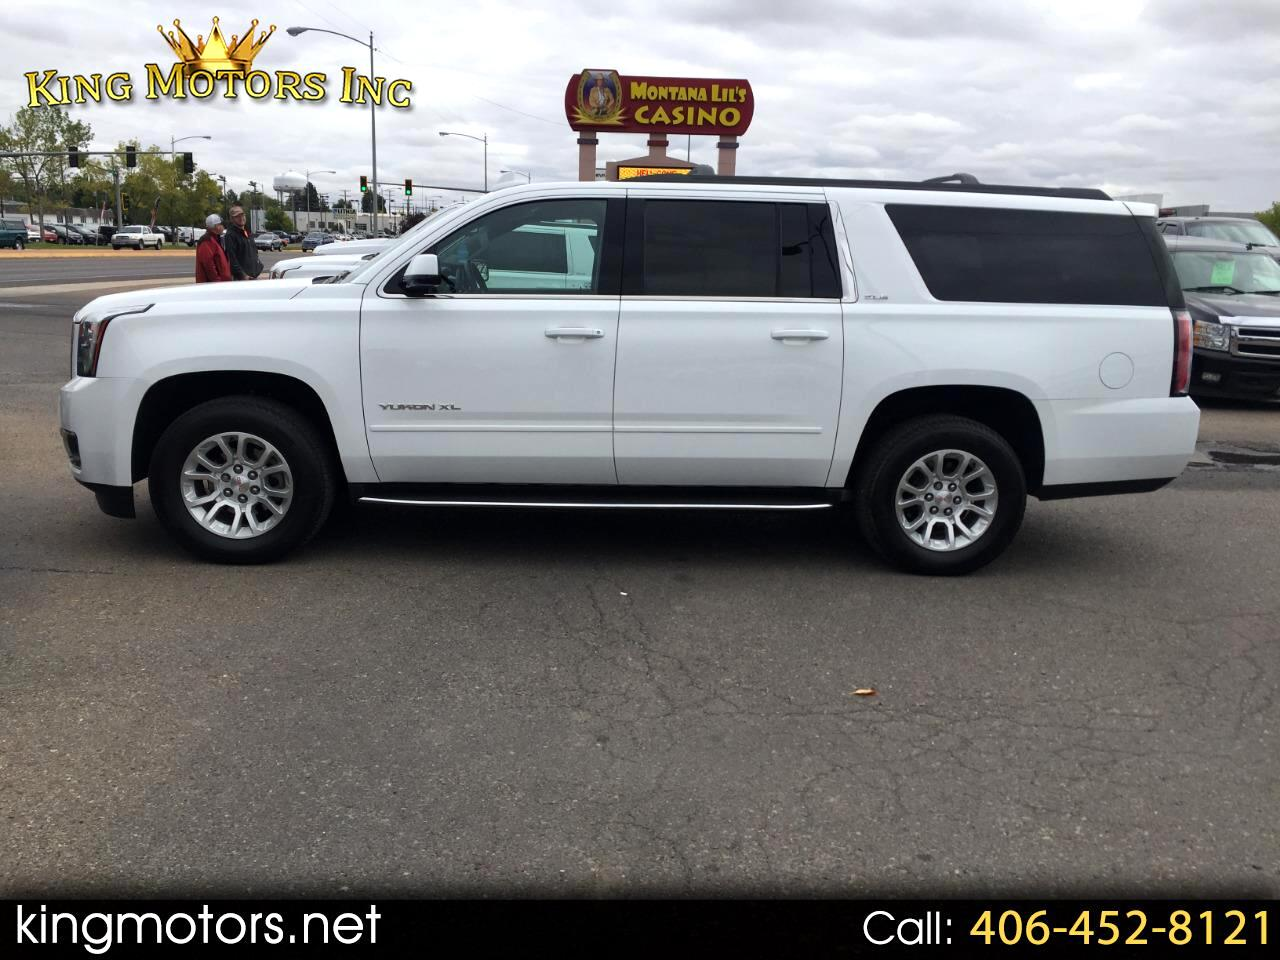 Used 2018 Gmc Yukon Xl 4wd 4dr Sle For Sale In Great Falls